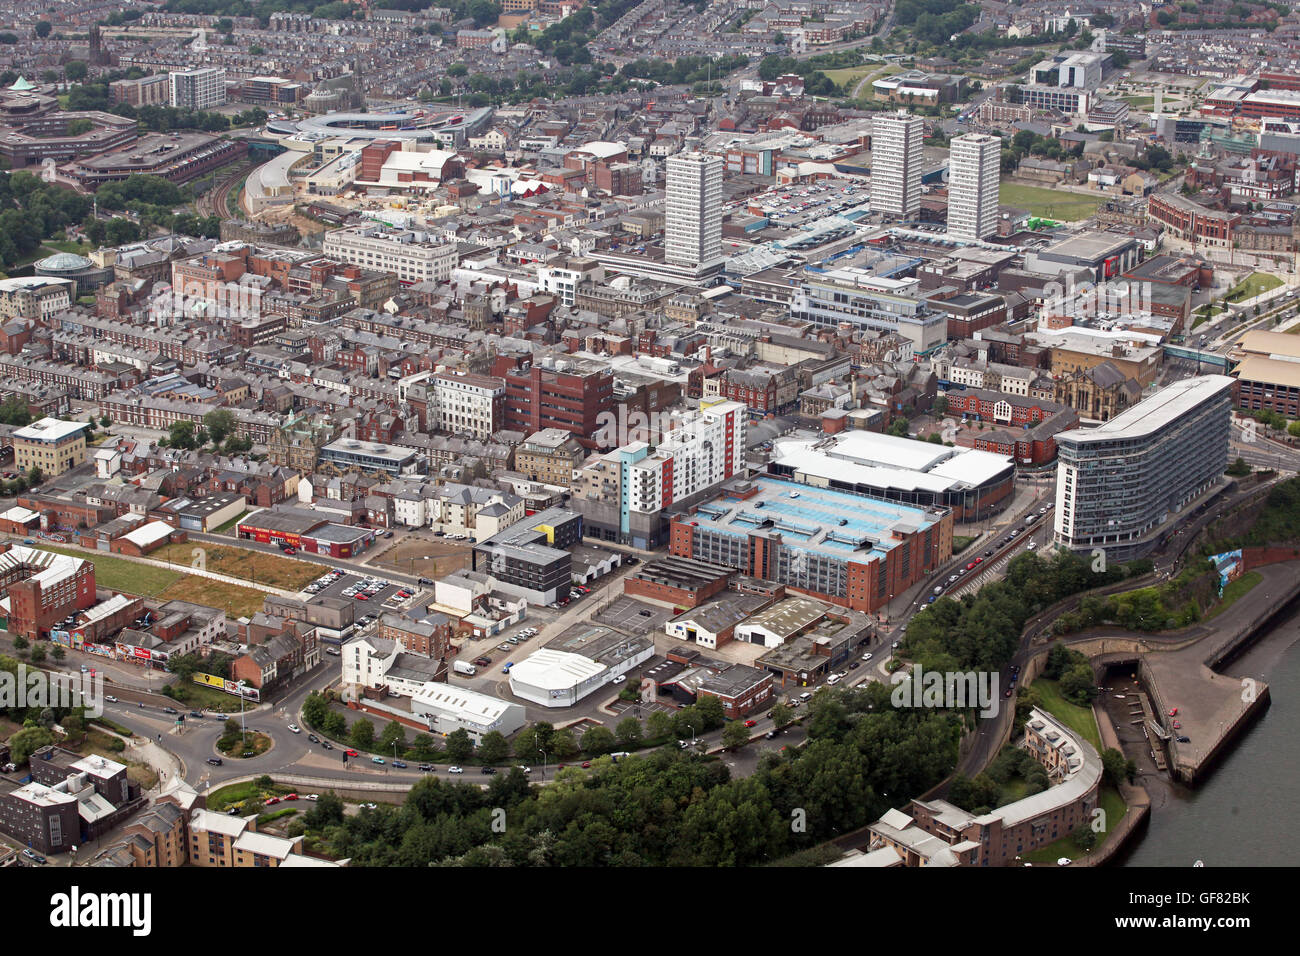 aerial view of Sunderland city centre, Tyne & Wear, UK - Stock Image